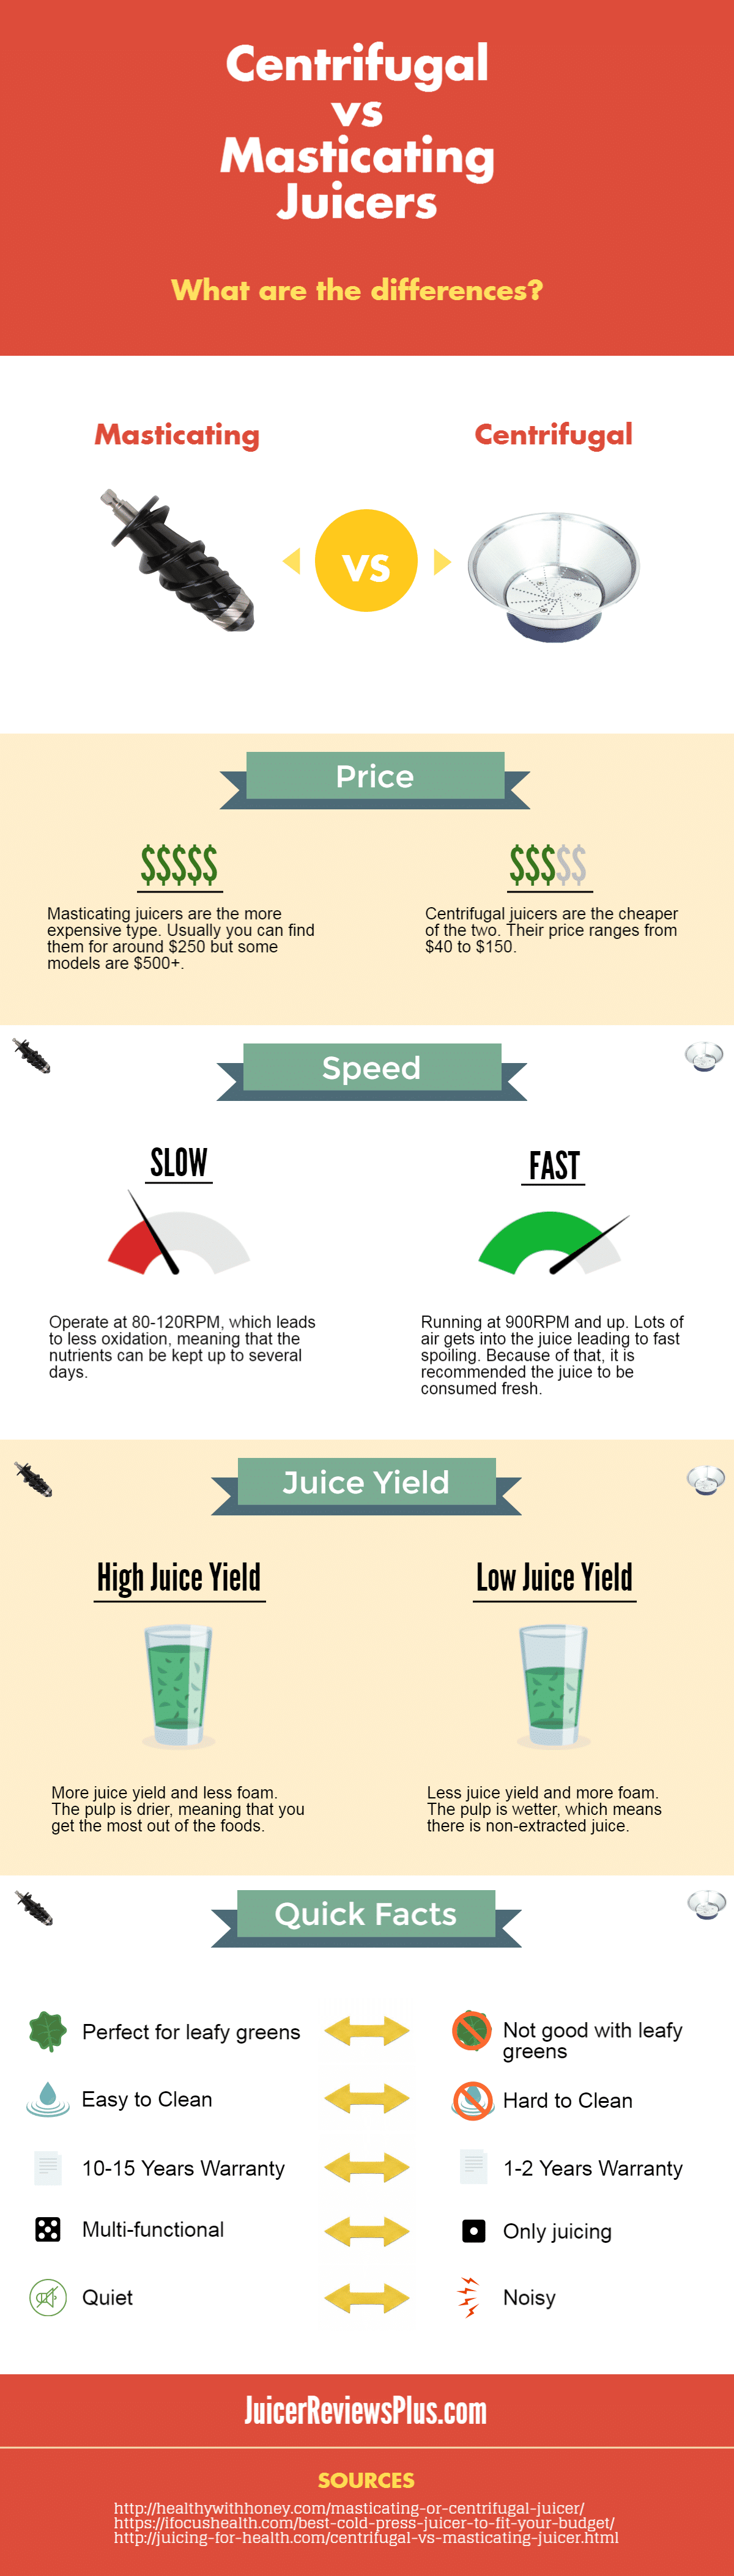 Masticating vs centrifugal juicers infographic